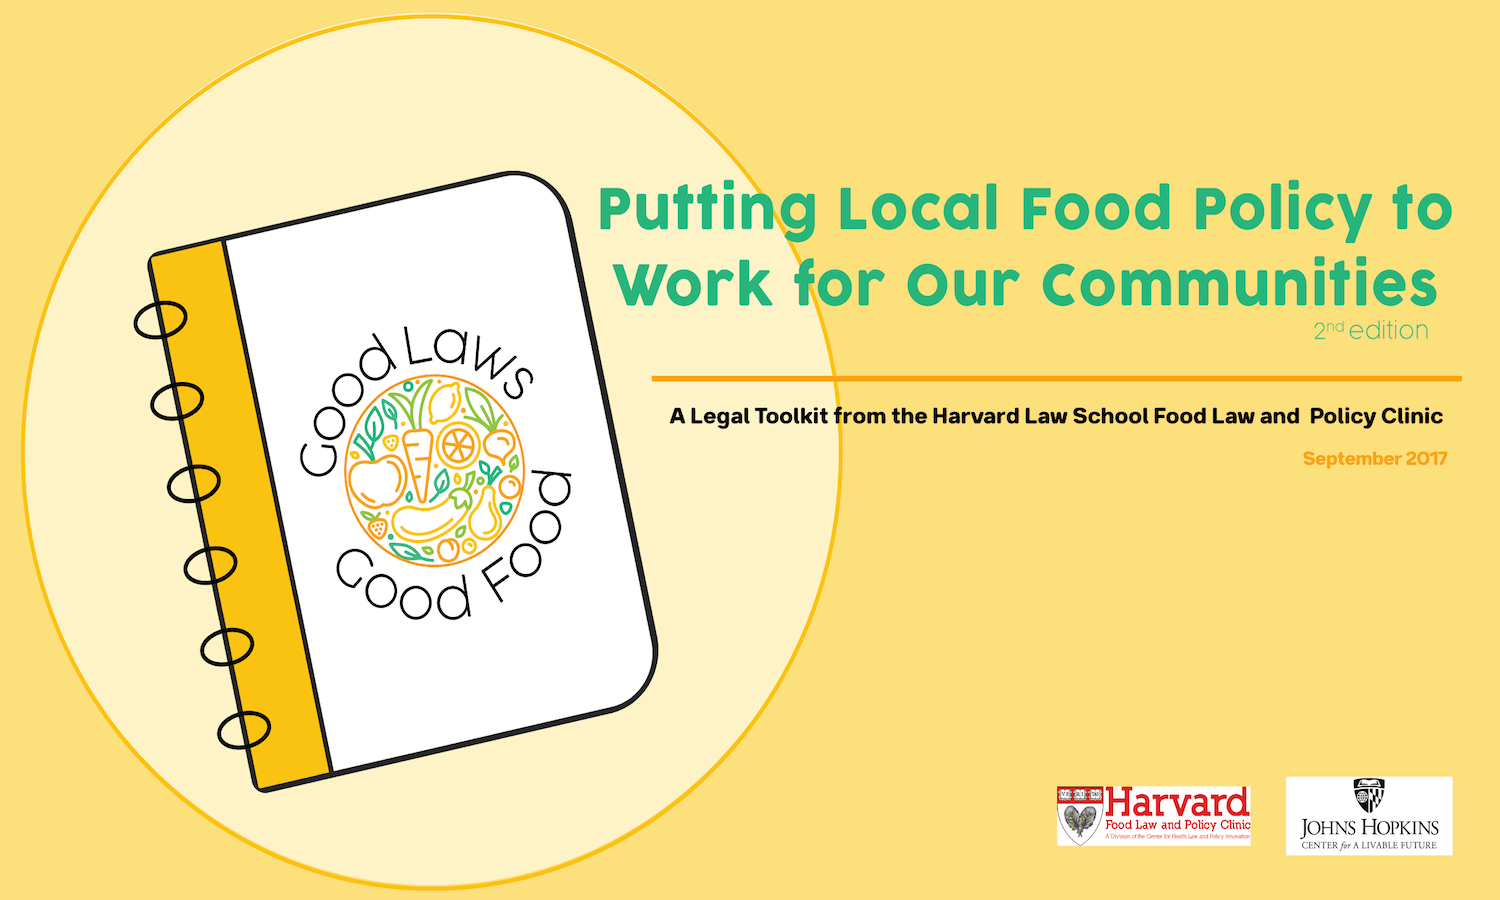 The second edition of the Good Laws Good Food toolkit helps food advocates and organizations enact change in their local food system.